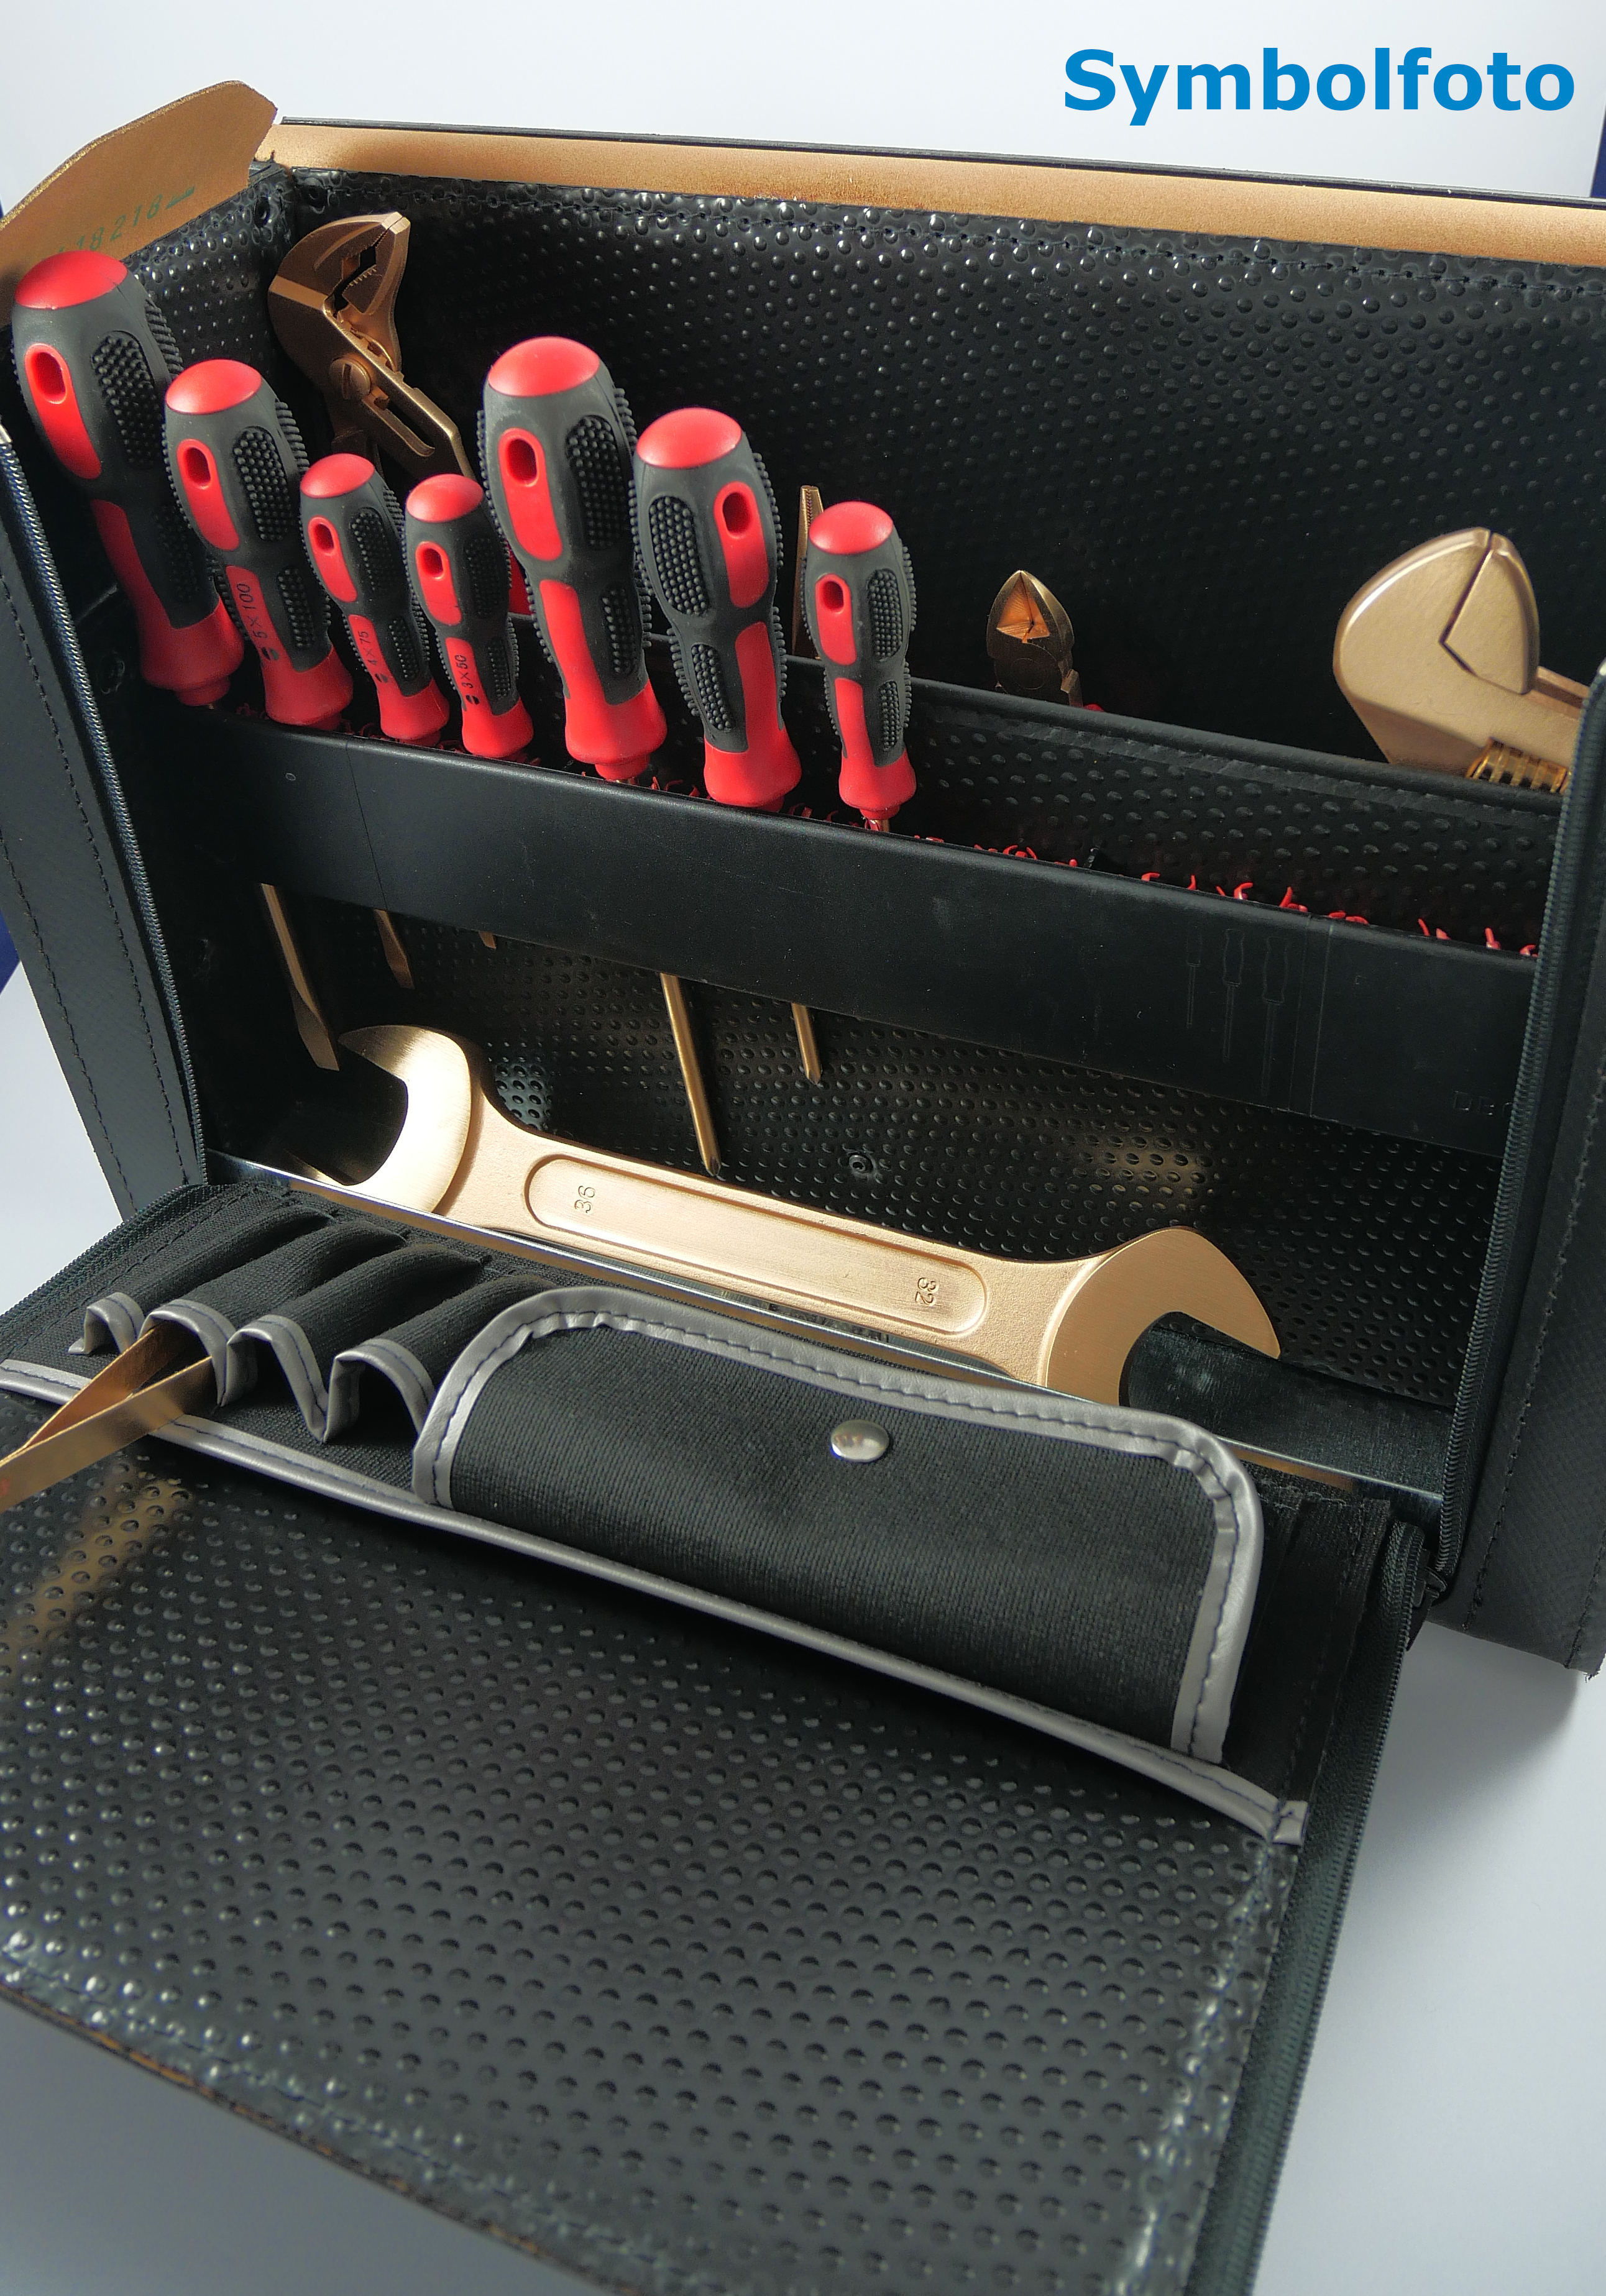 Tool case spark-free tool 56 pcs- non-sparking / low-sparking